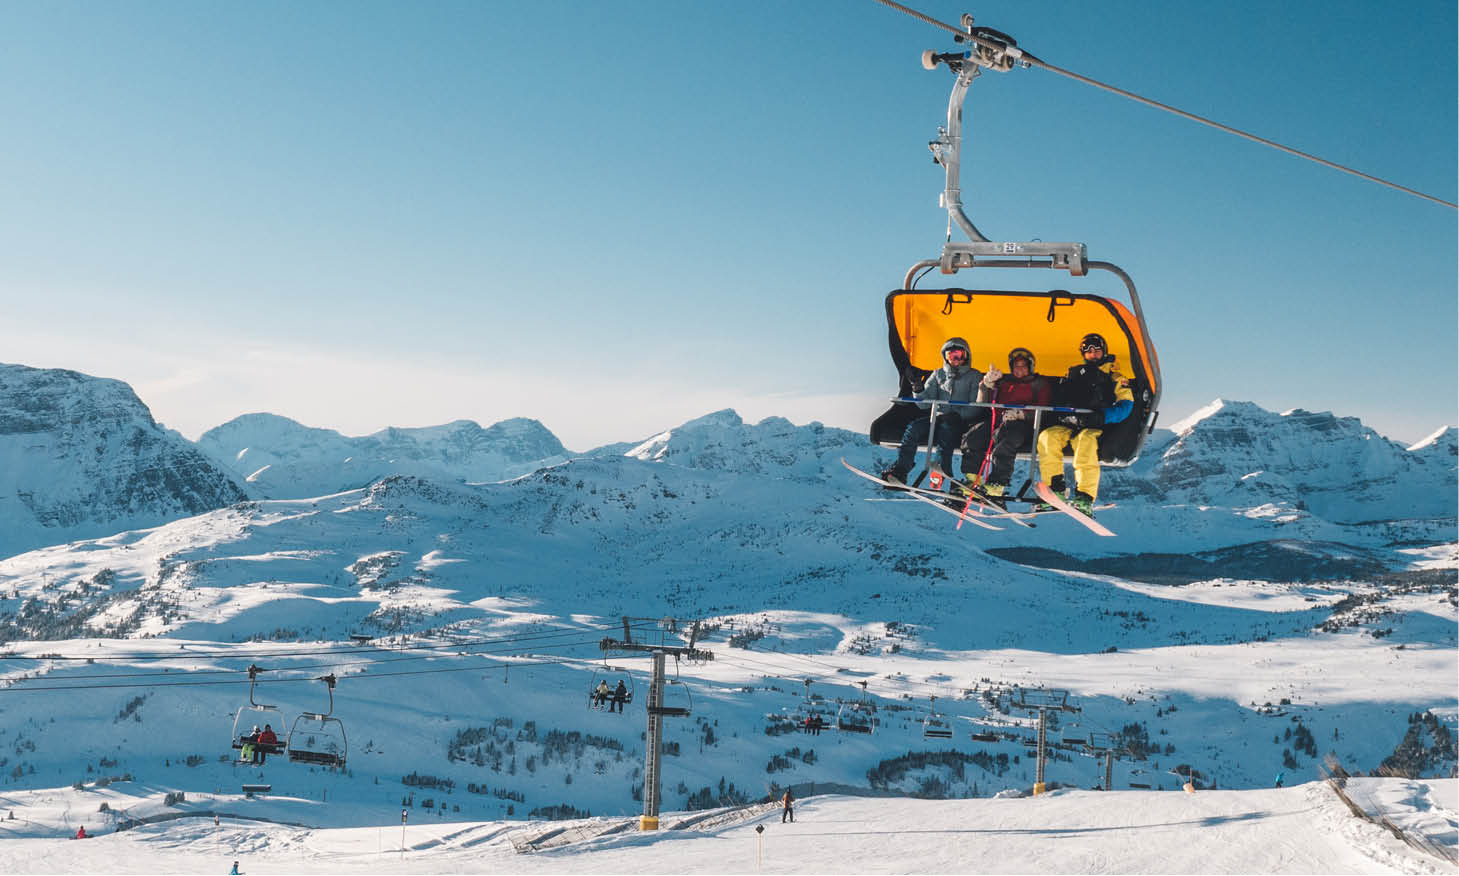 Skiers in a chairlift at Sunshine Village